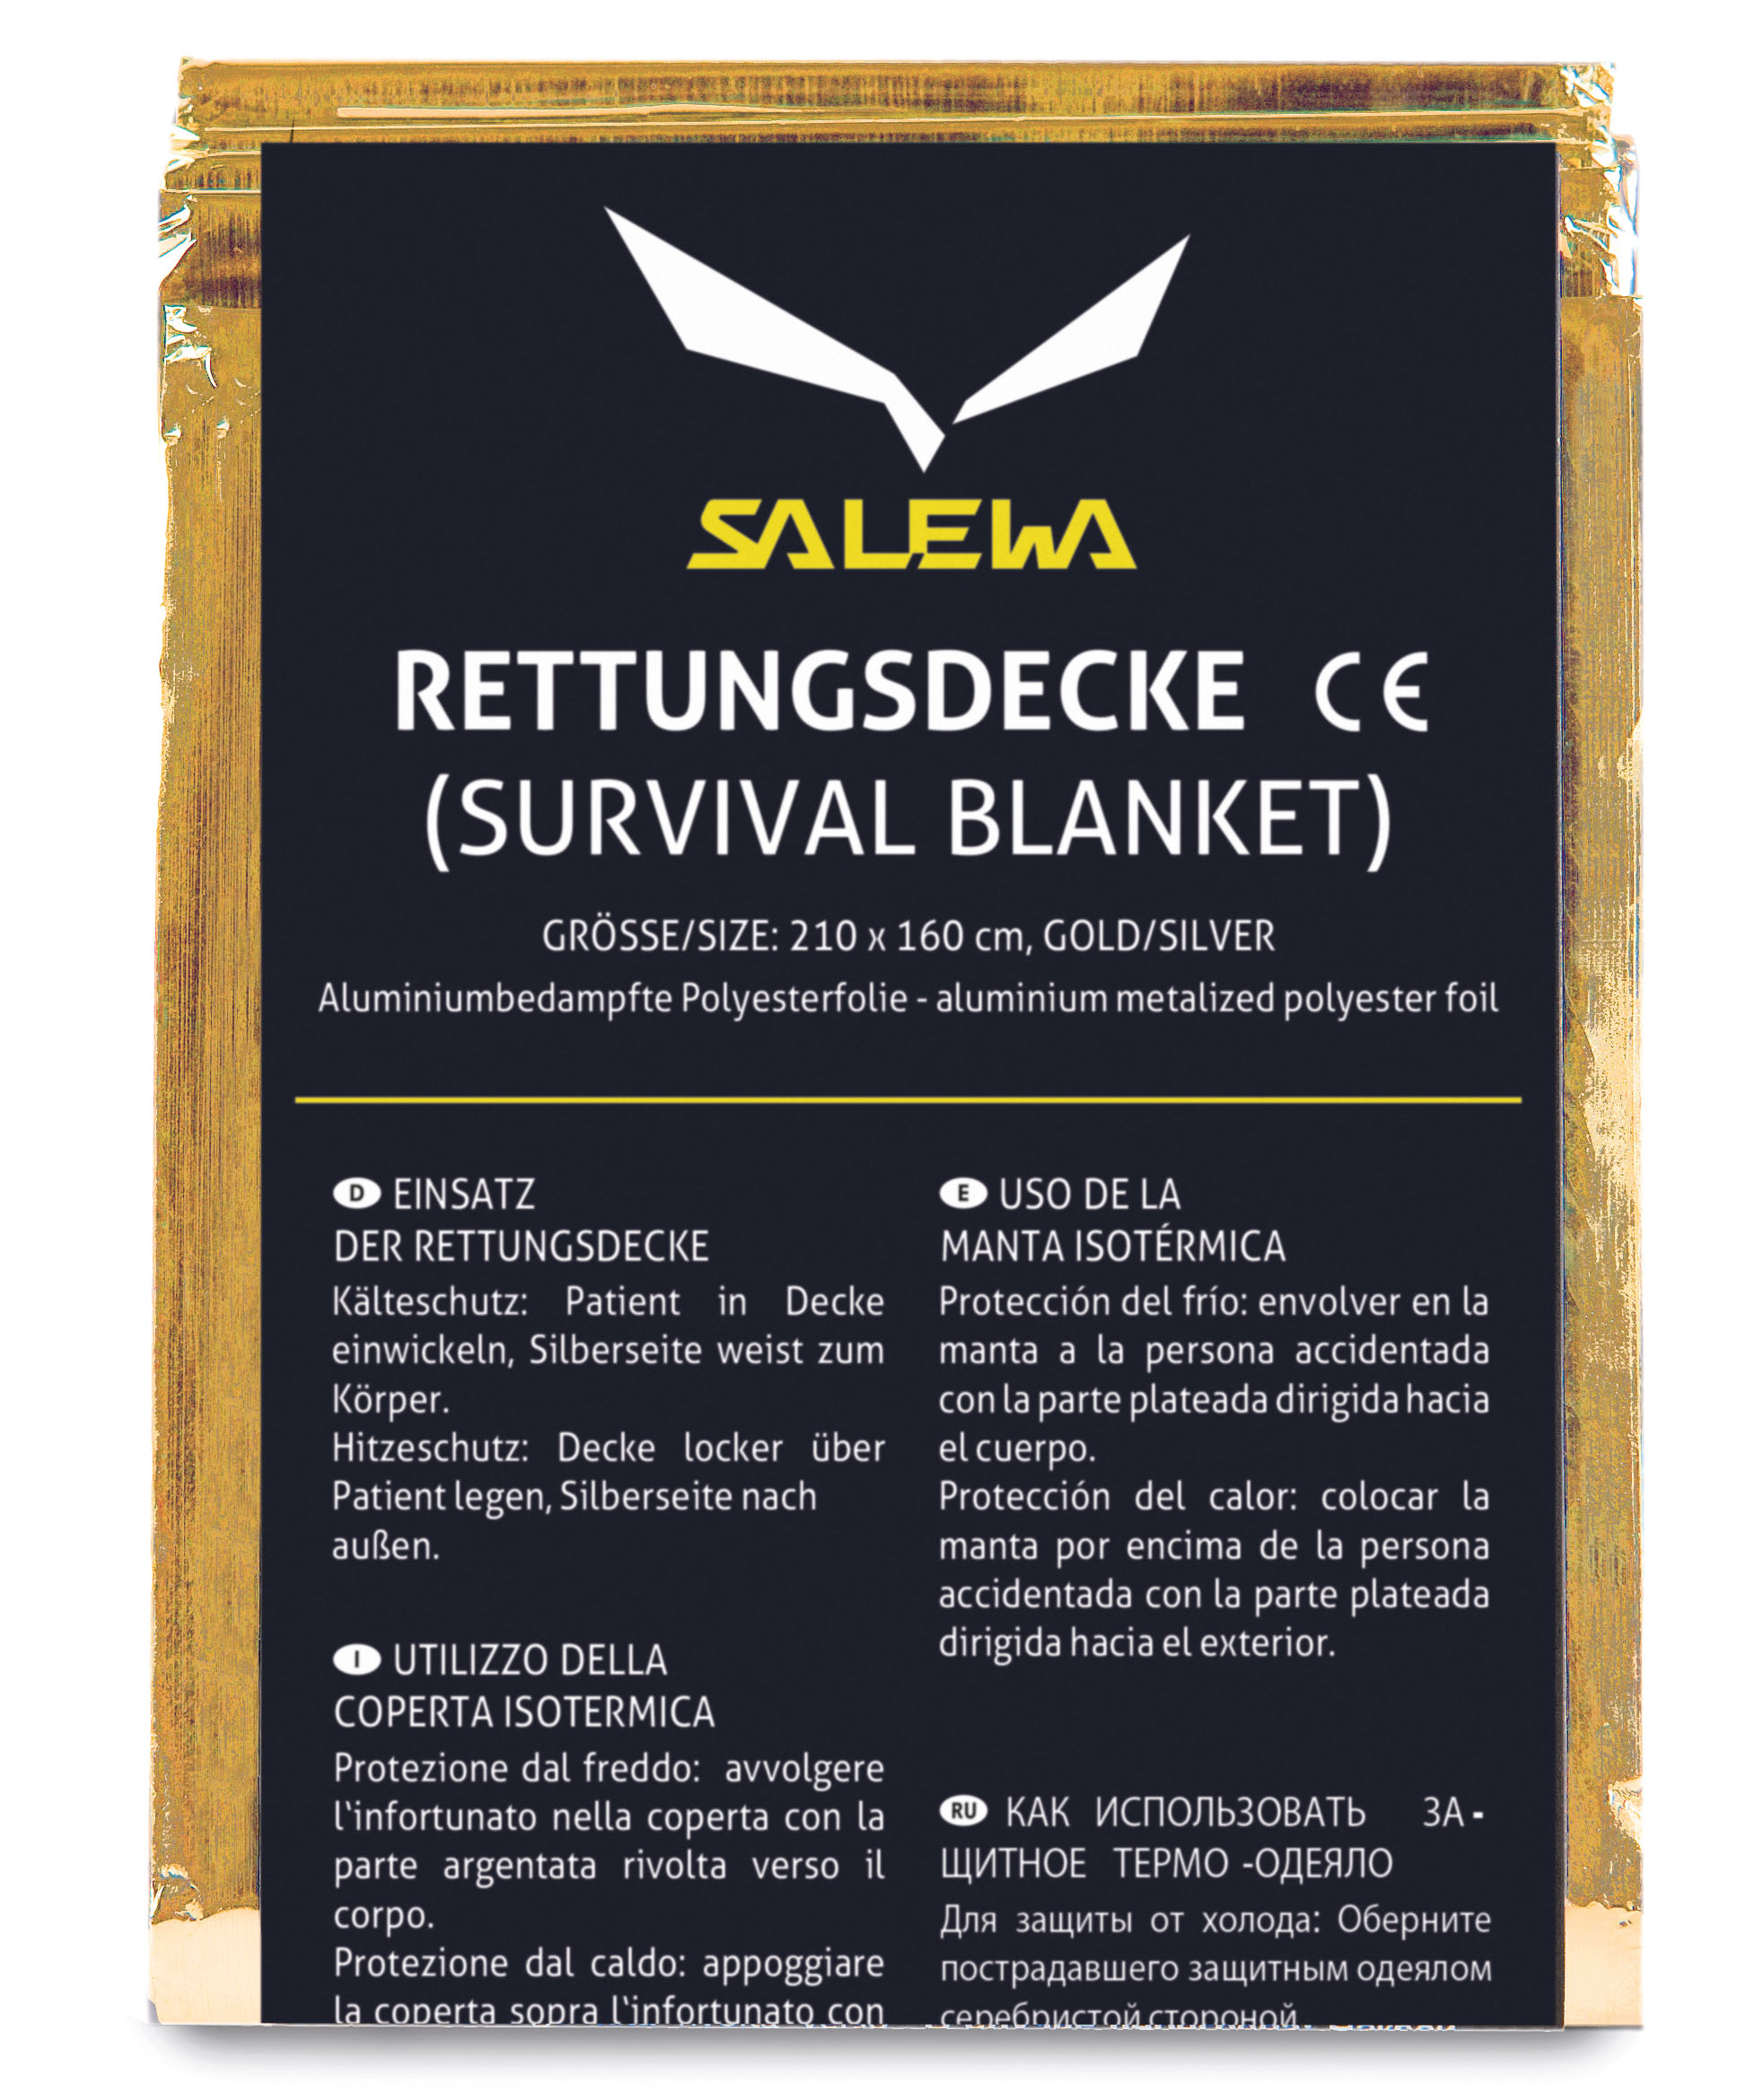 Одеяло спасательное Salewa 2015 First Aid & Bivibag RESCUE BLANKET GOLD/SILVER /